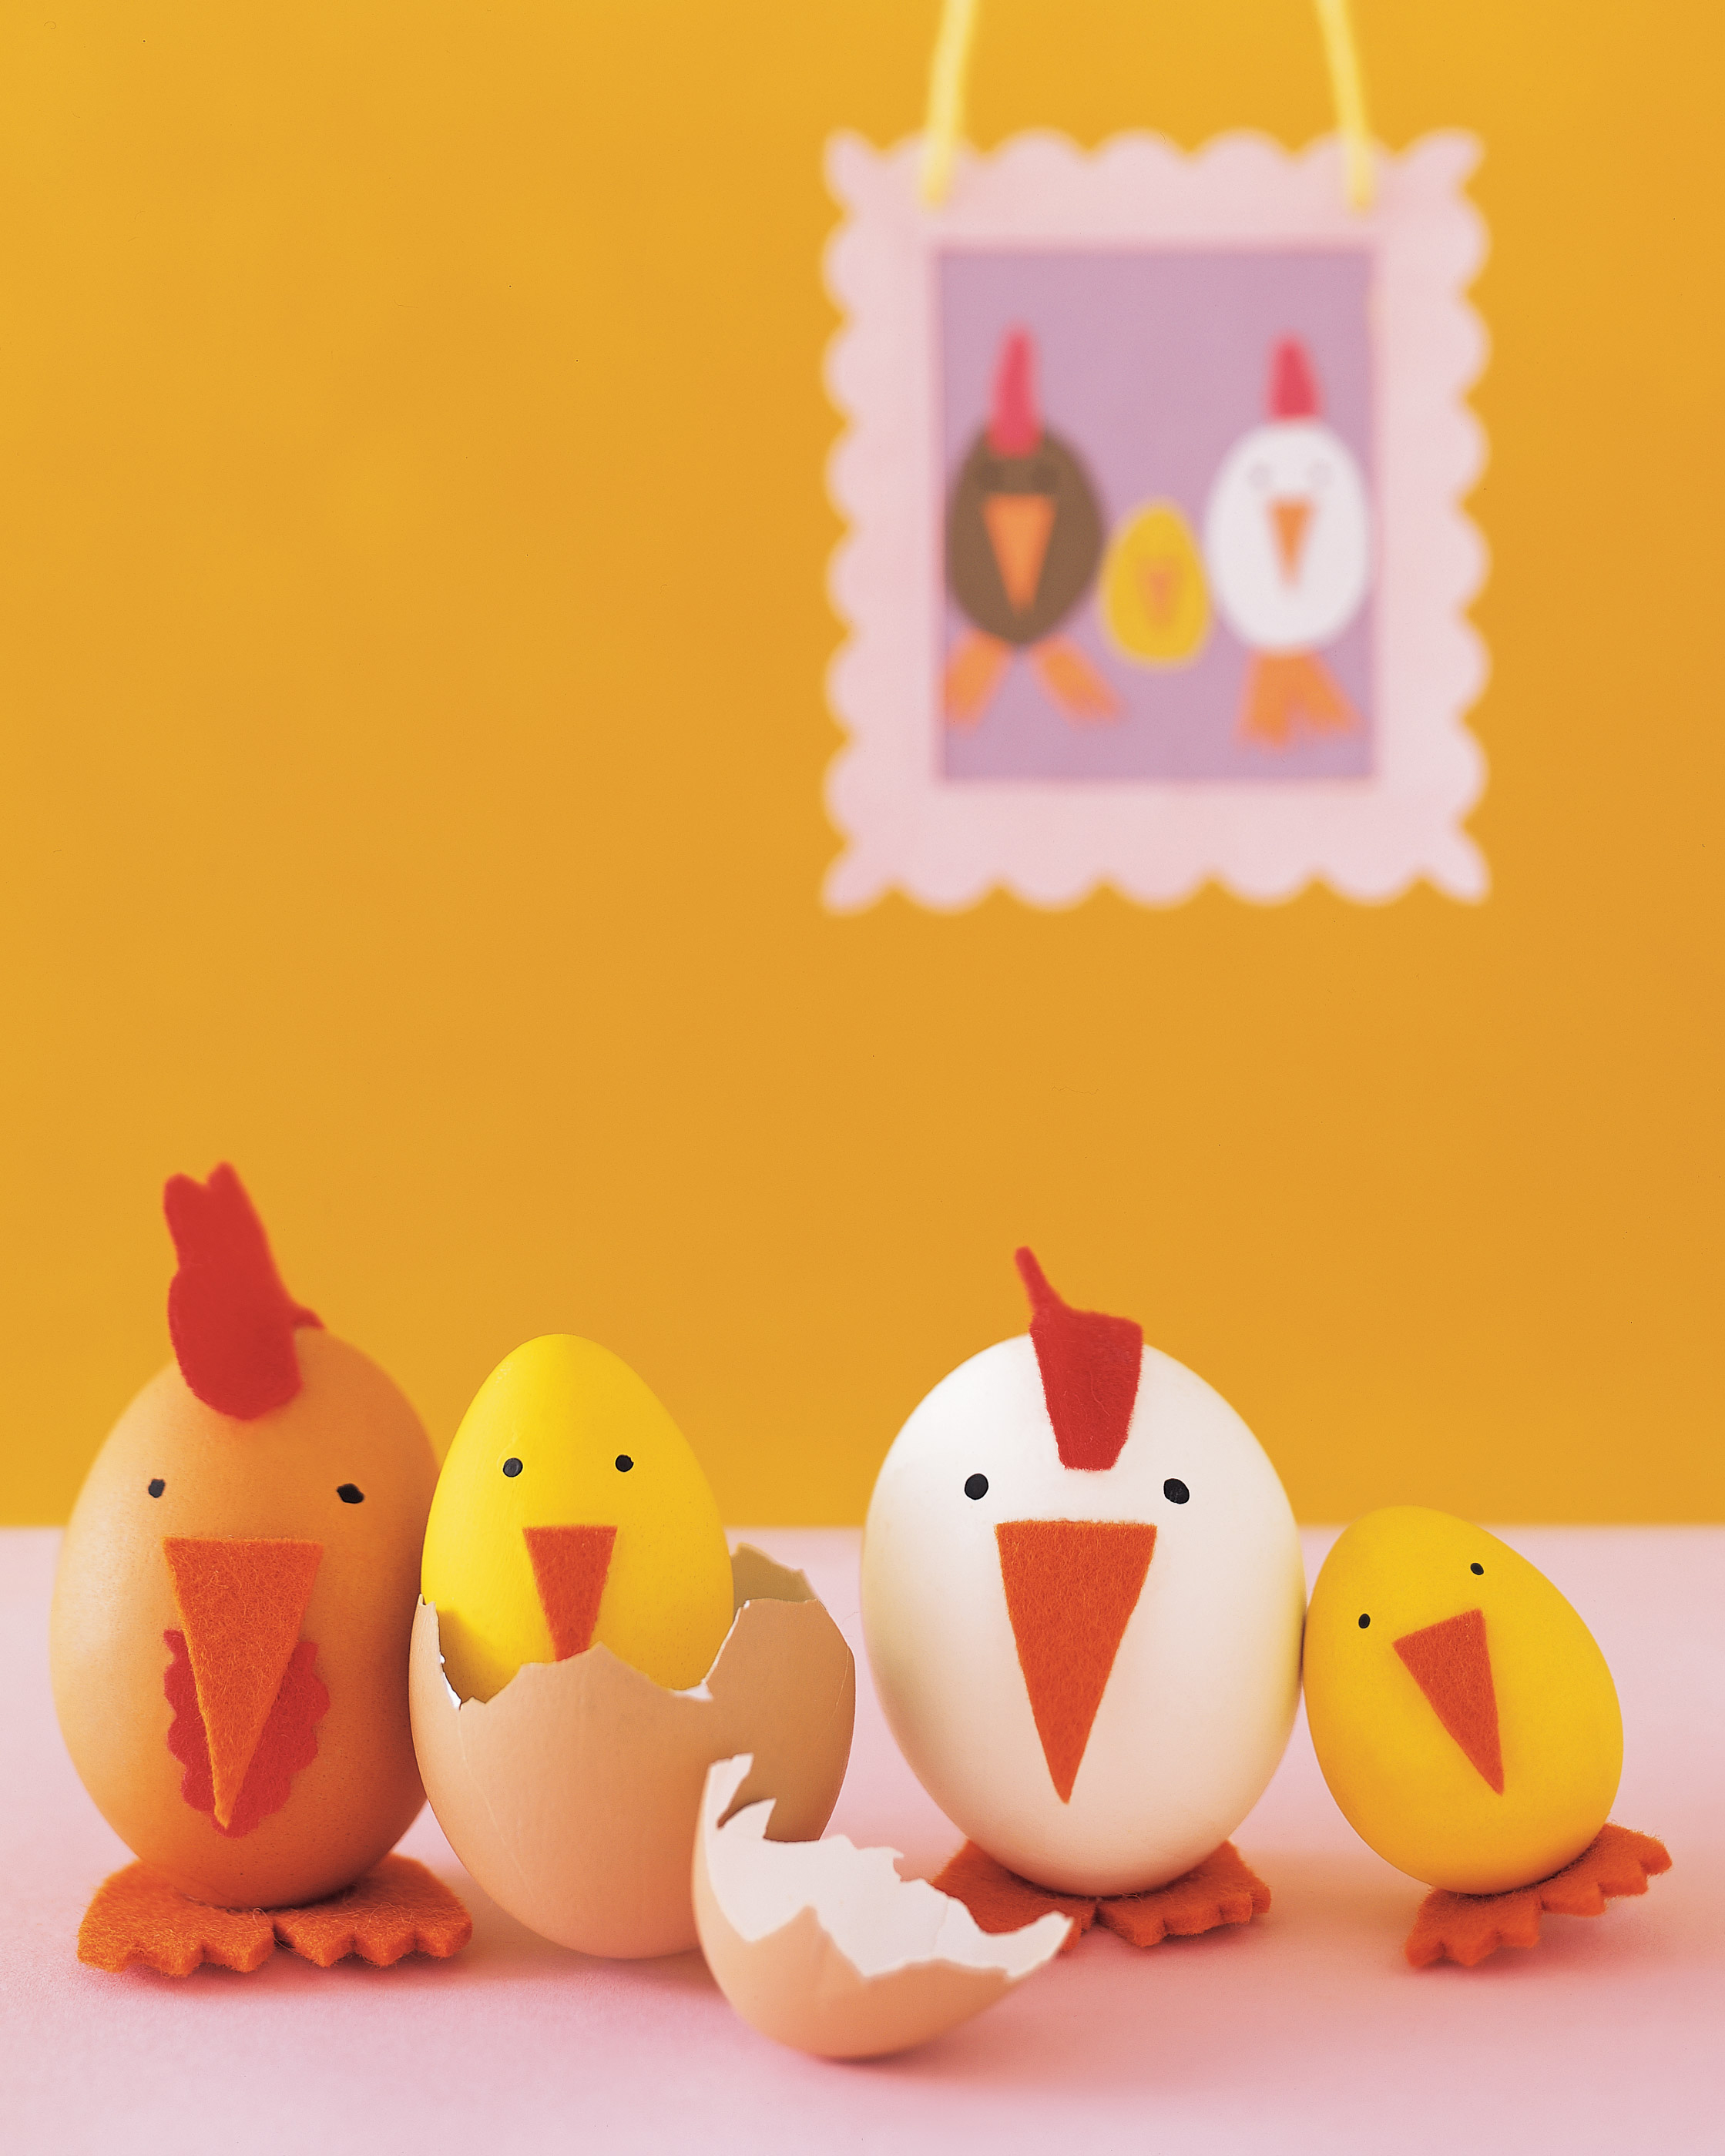 kids_spring06_egg_chickens.jpg